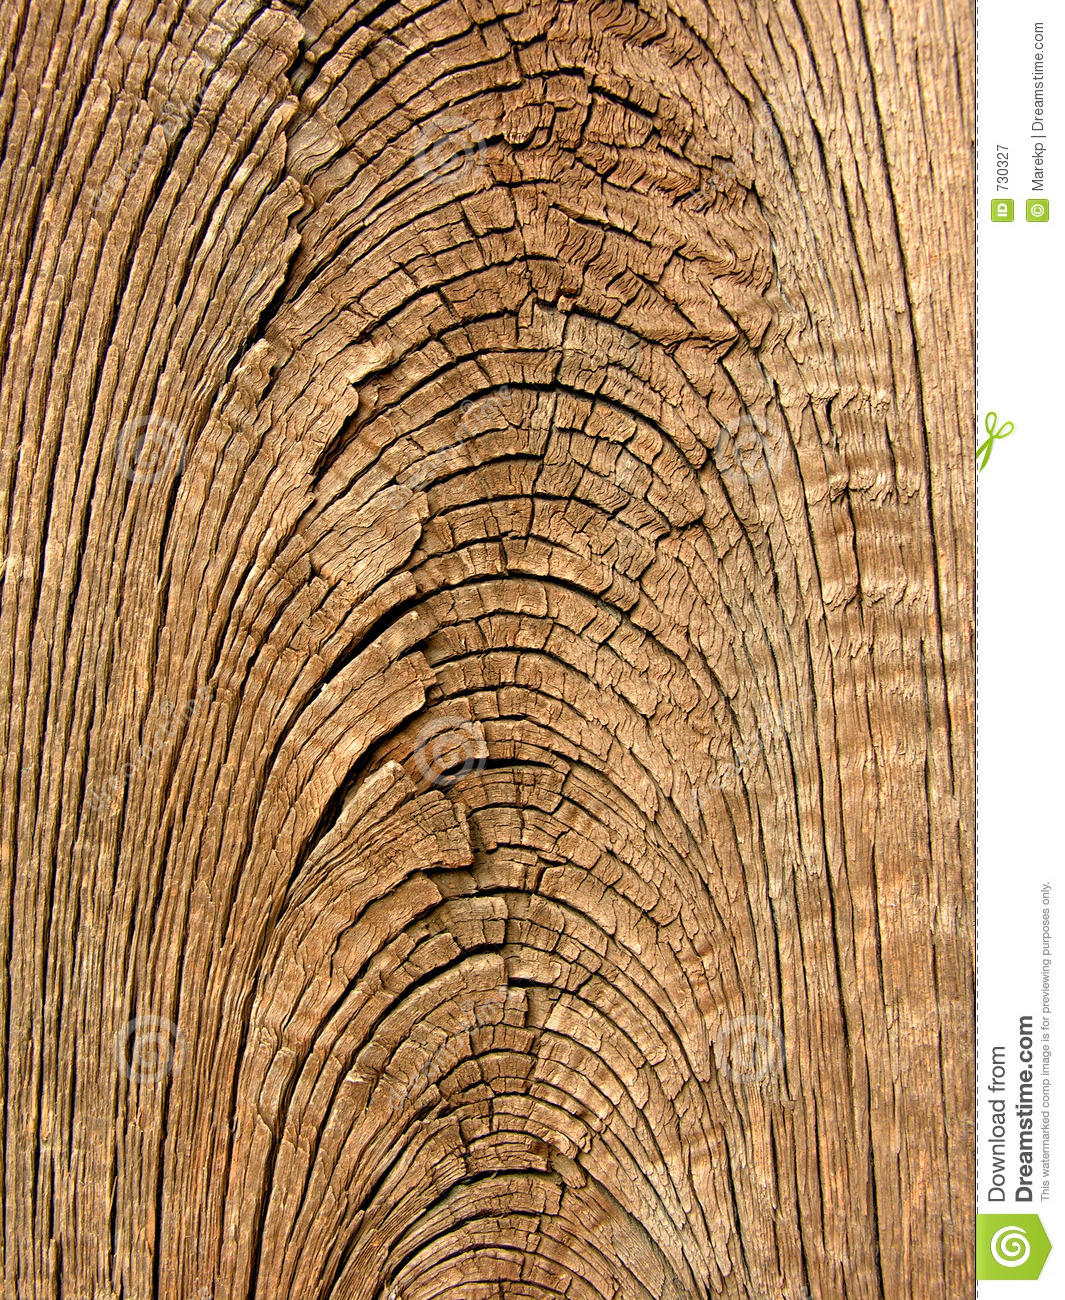 Old Wood Grain Texture Royalty Free Stock Photography - Image: 730327